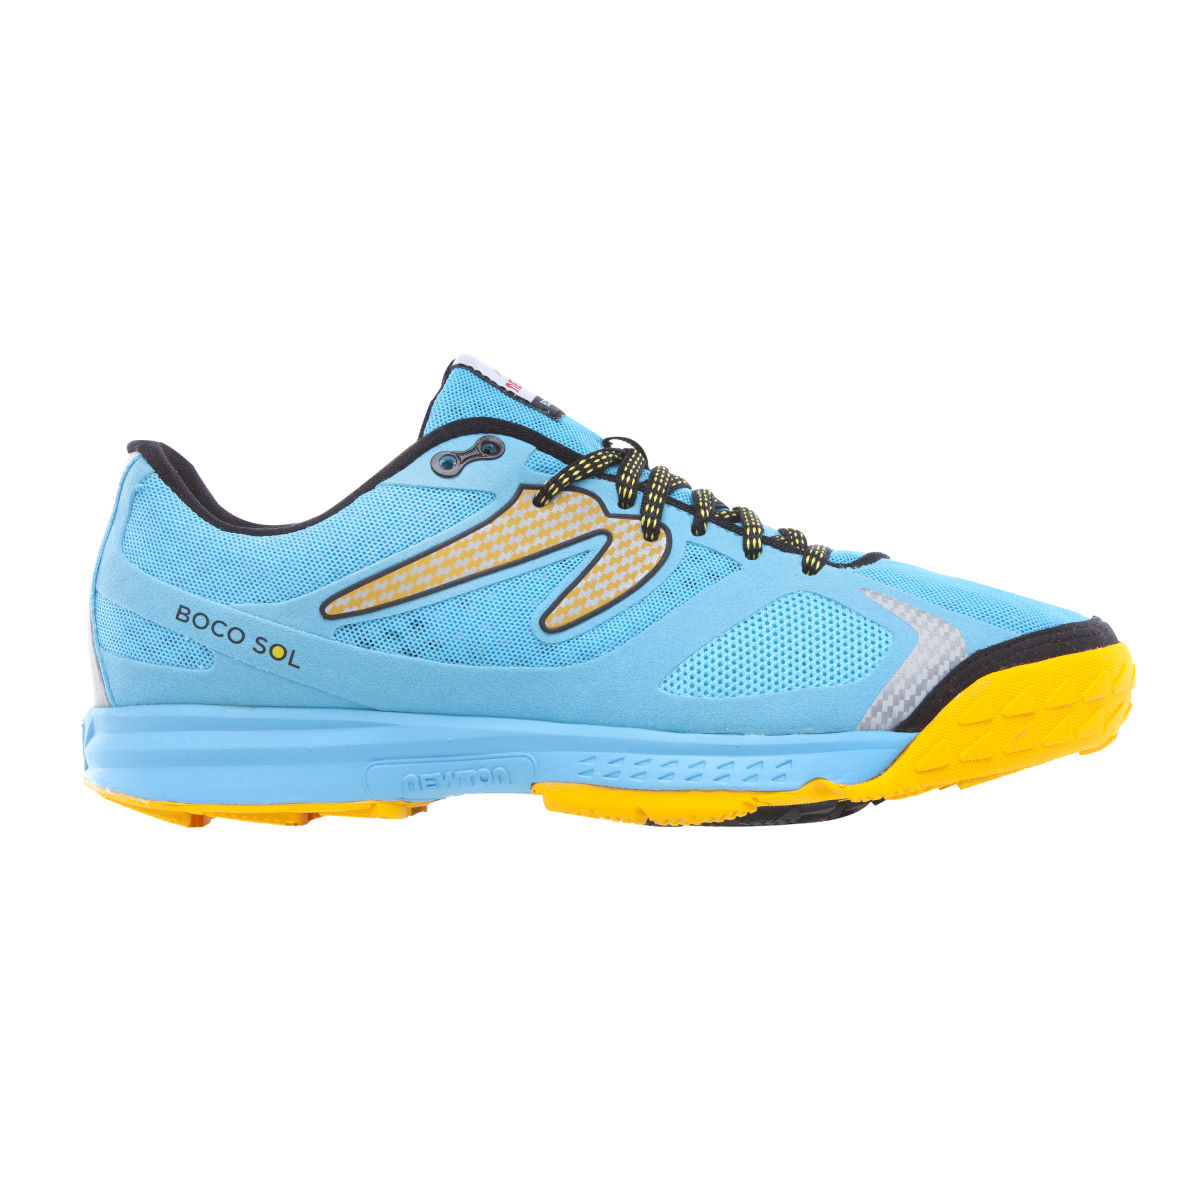 Newton Running Shoes Boco Sol (SS16) - UK 11.5 Blue/Yellow